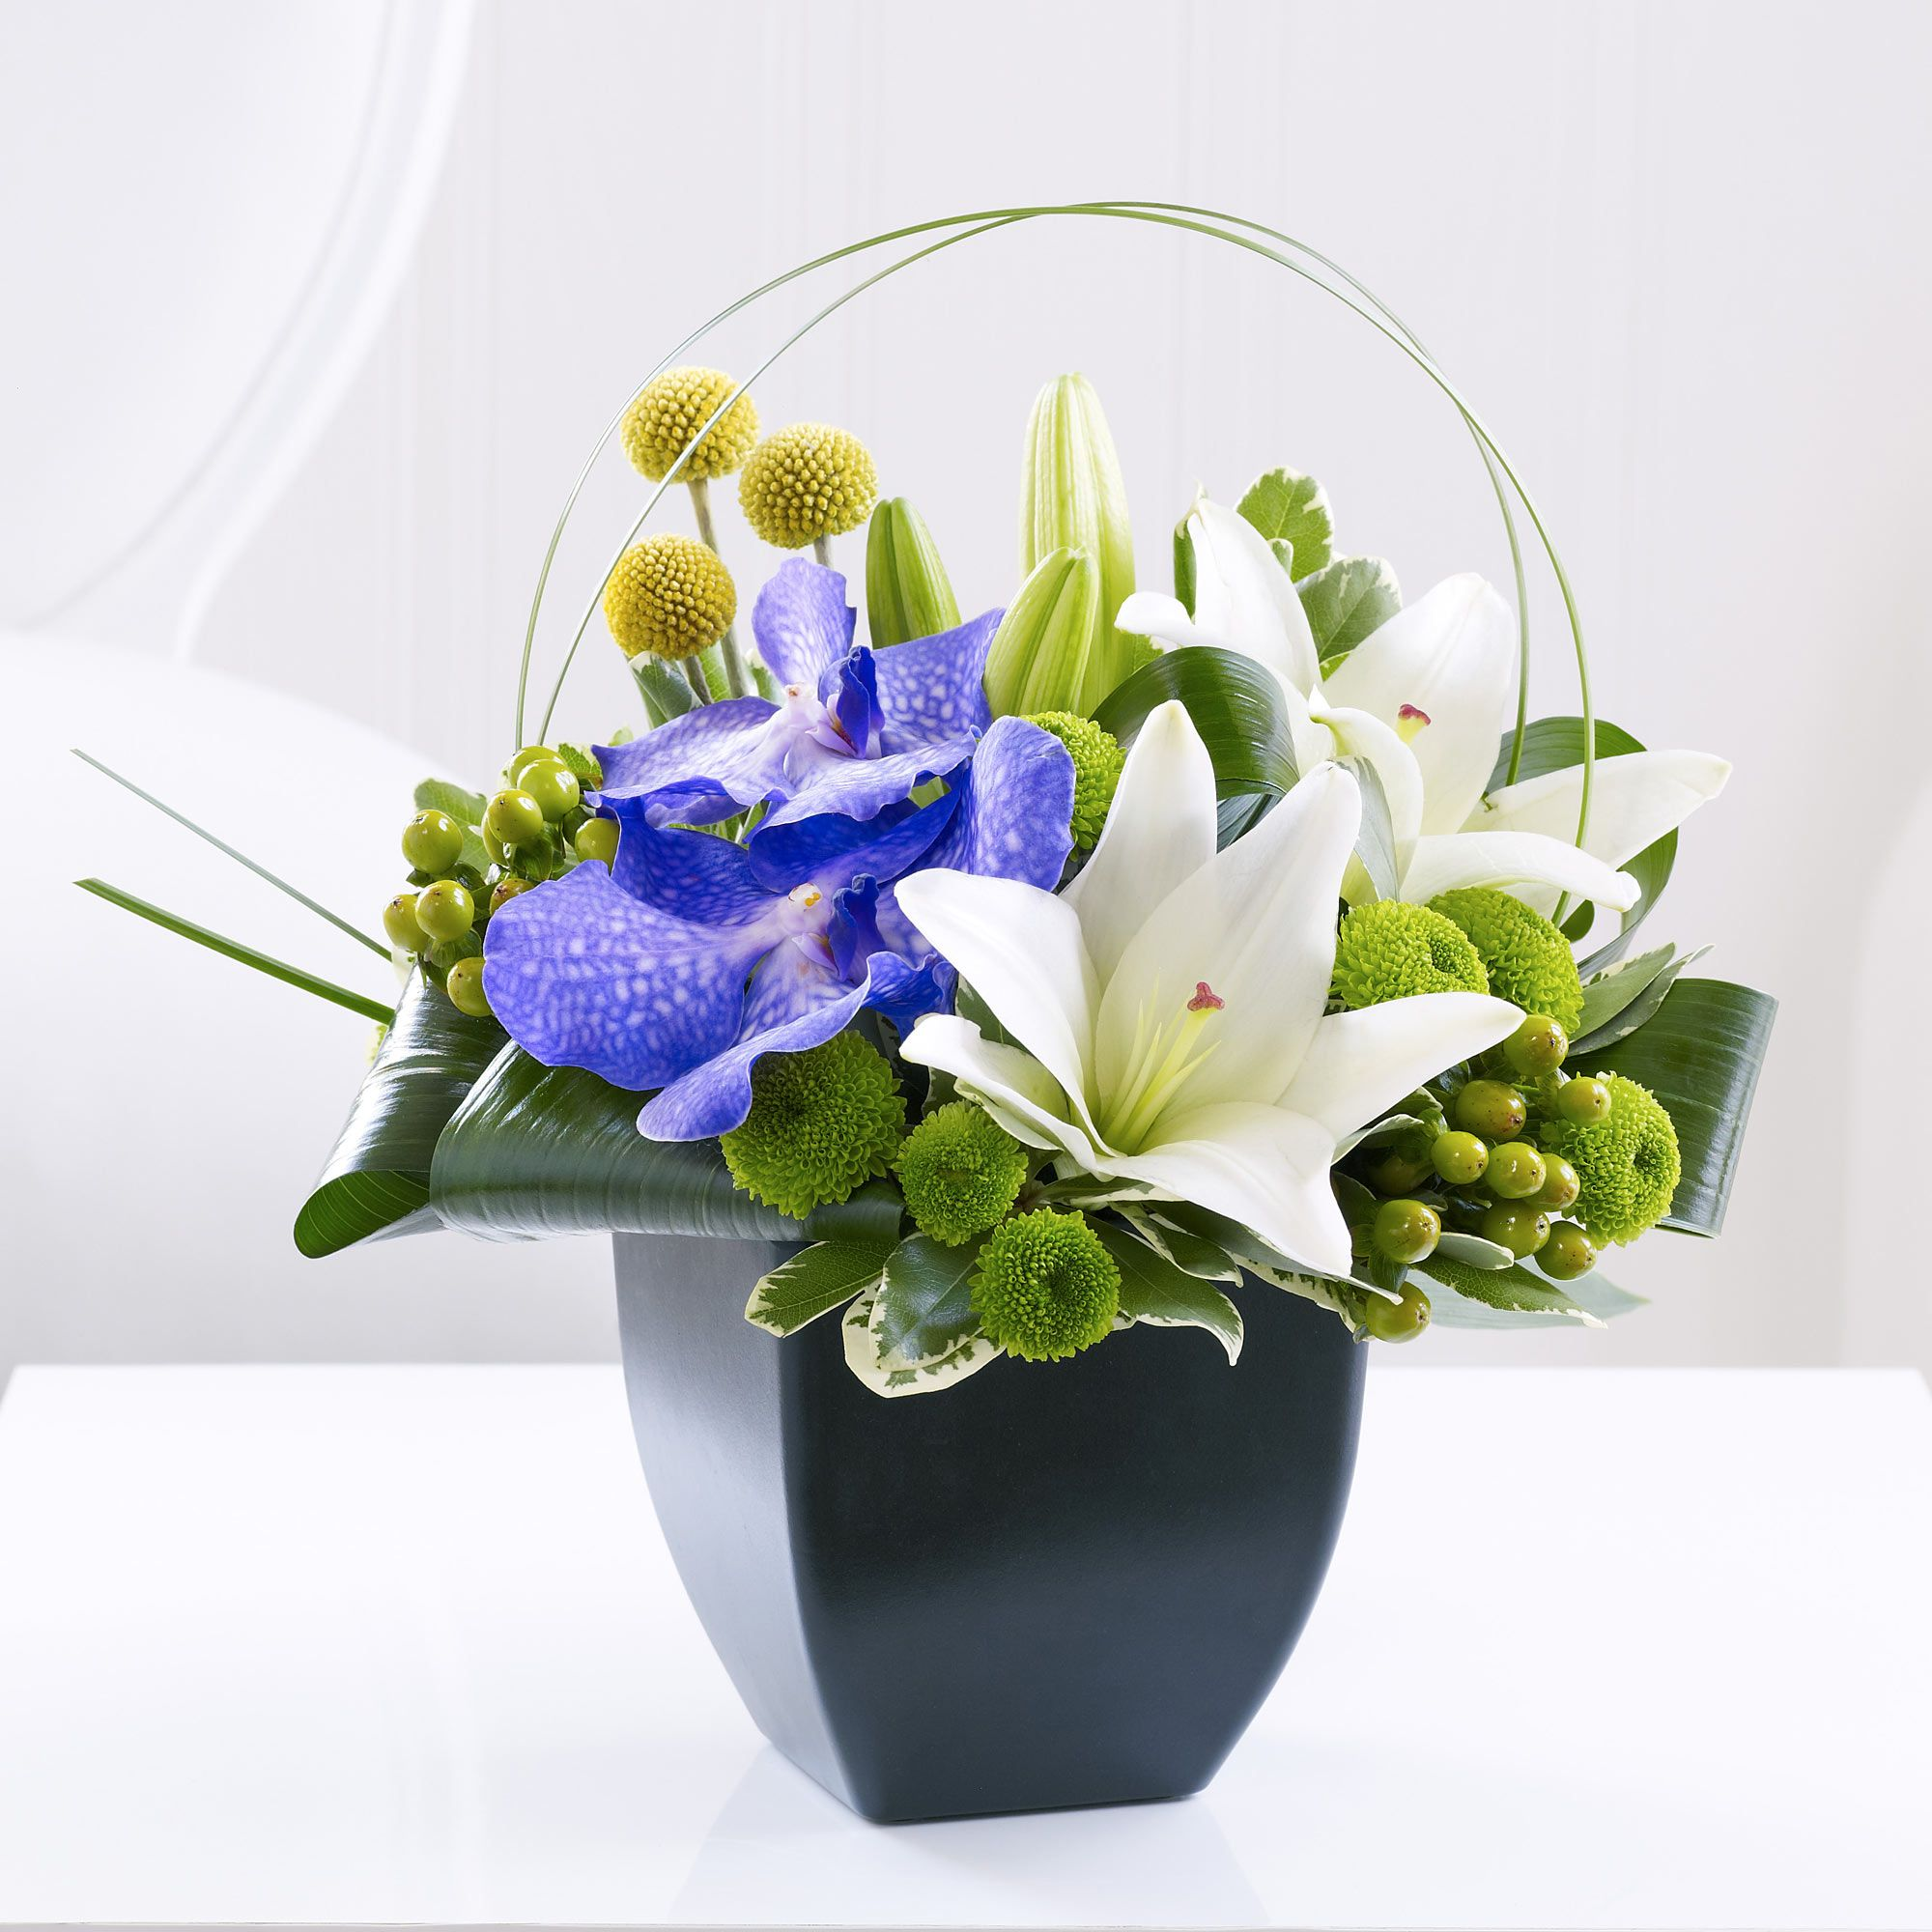 A Beautiful Arrangement For The Home Containing The Magical Looking Vanda Orchid Orchid Arrangements White Flower Arrangements Flowers Delivered